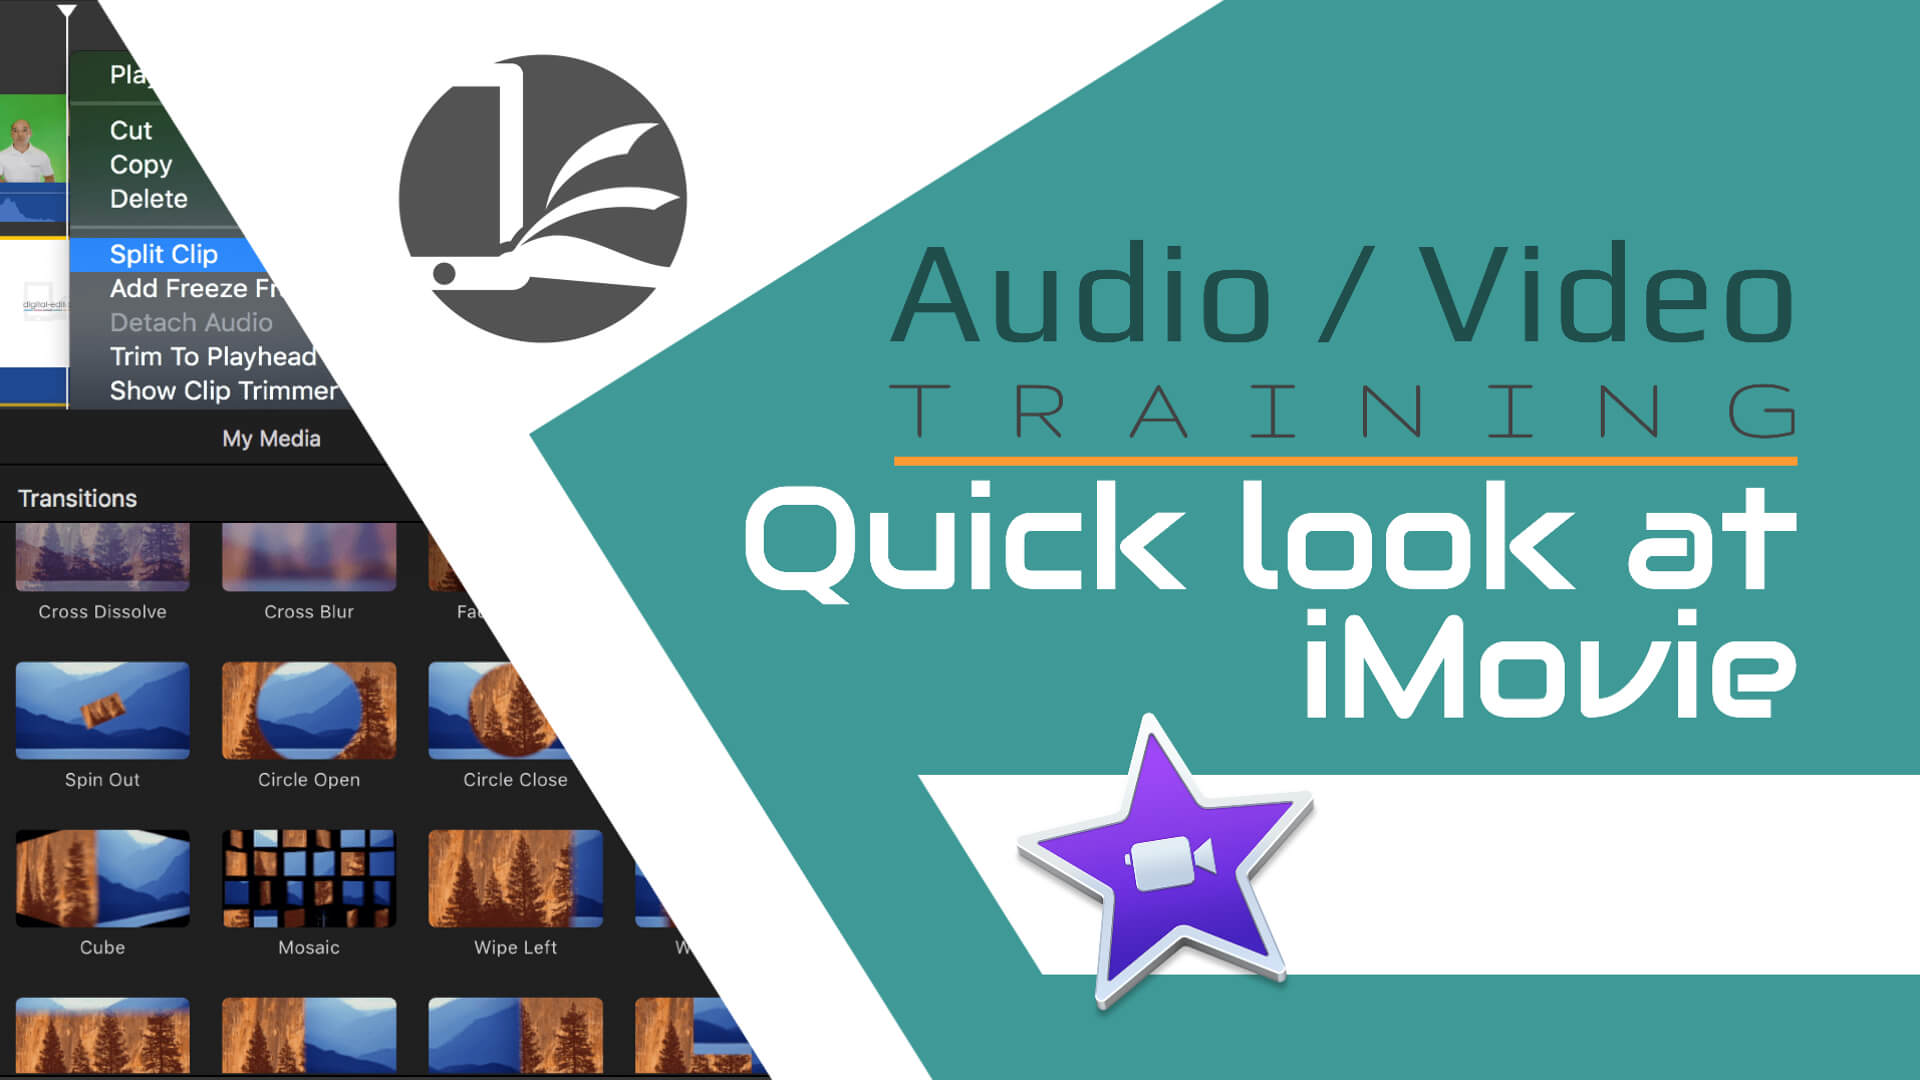 Quick look at iMovie